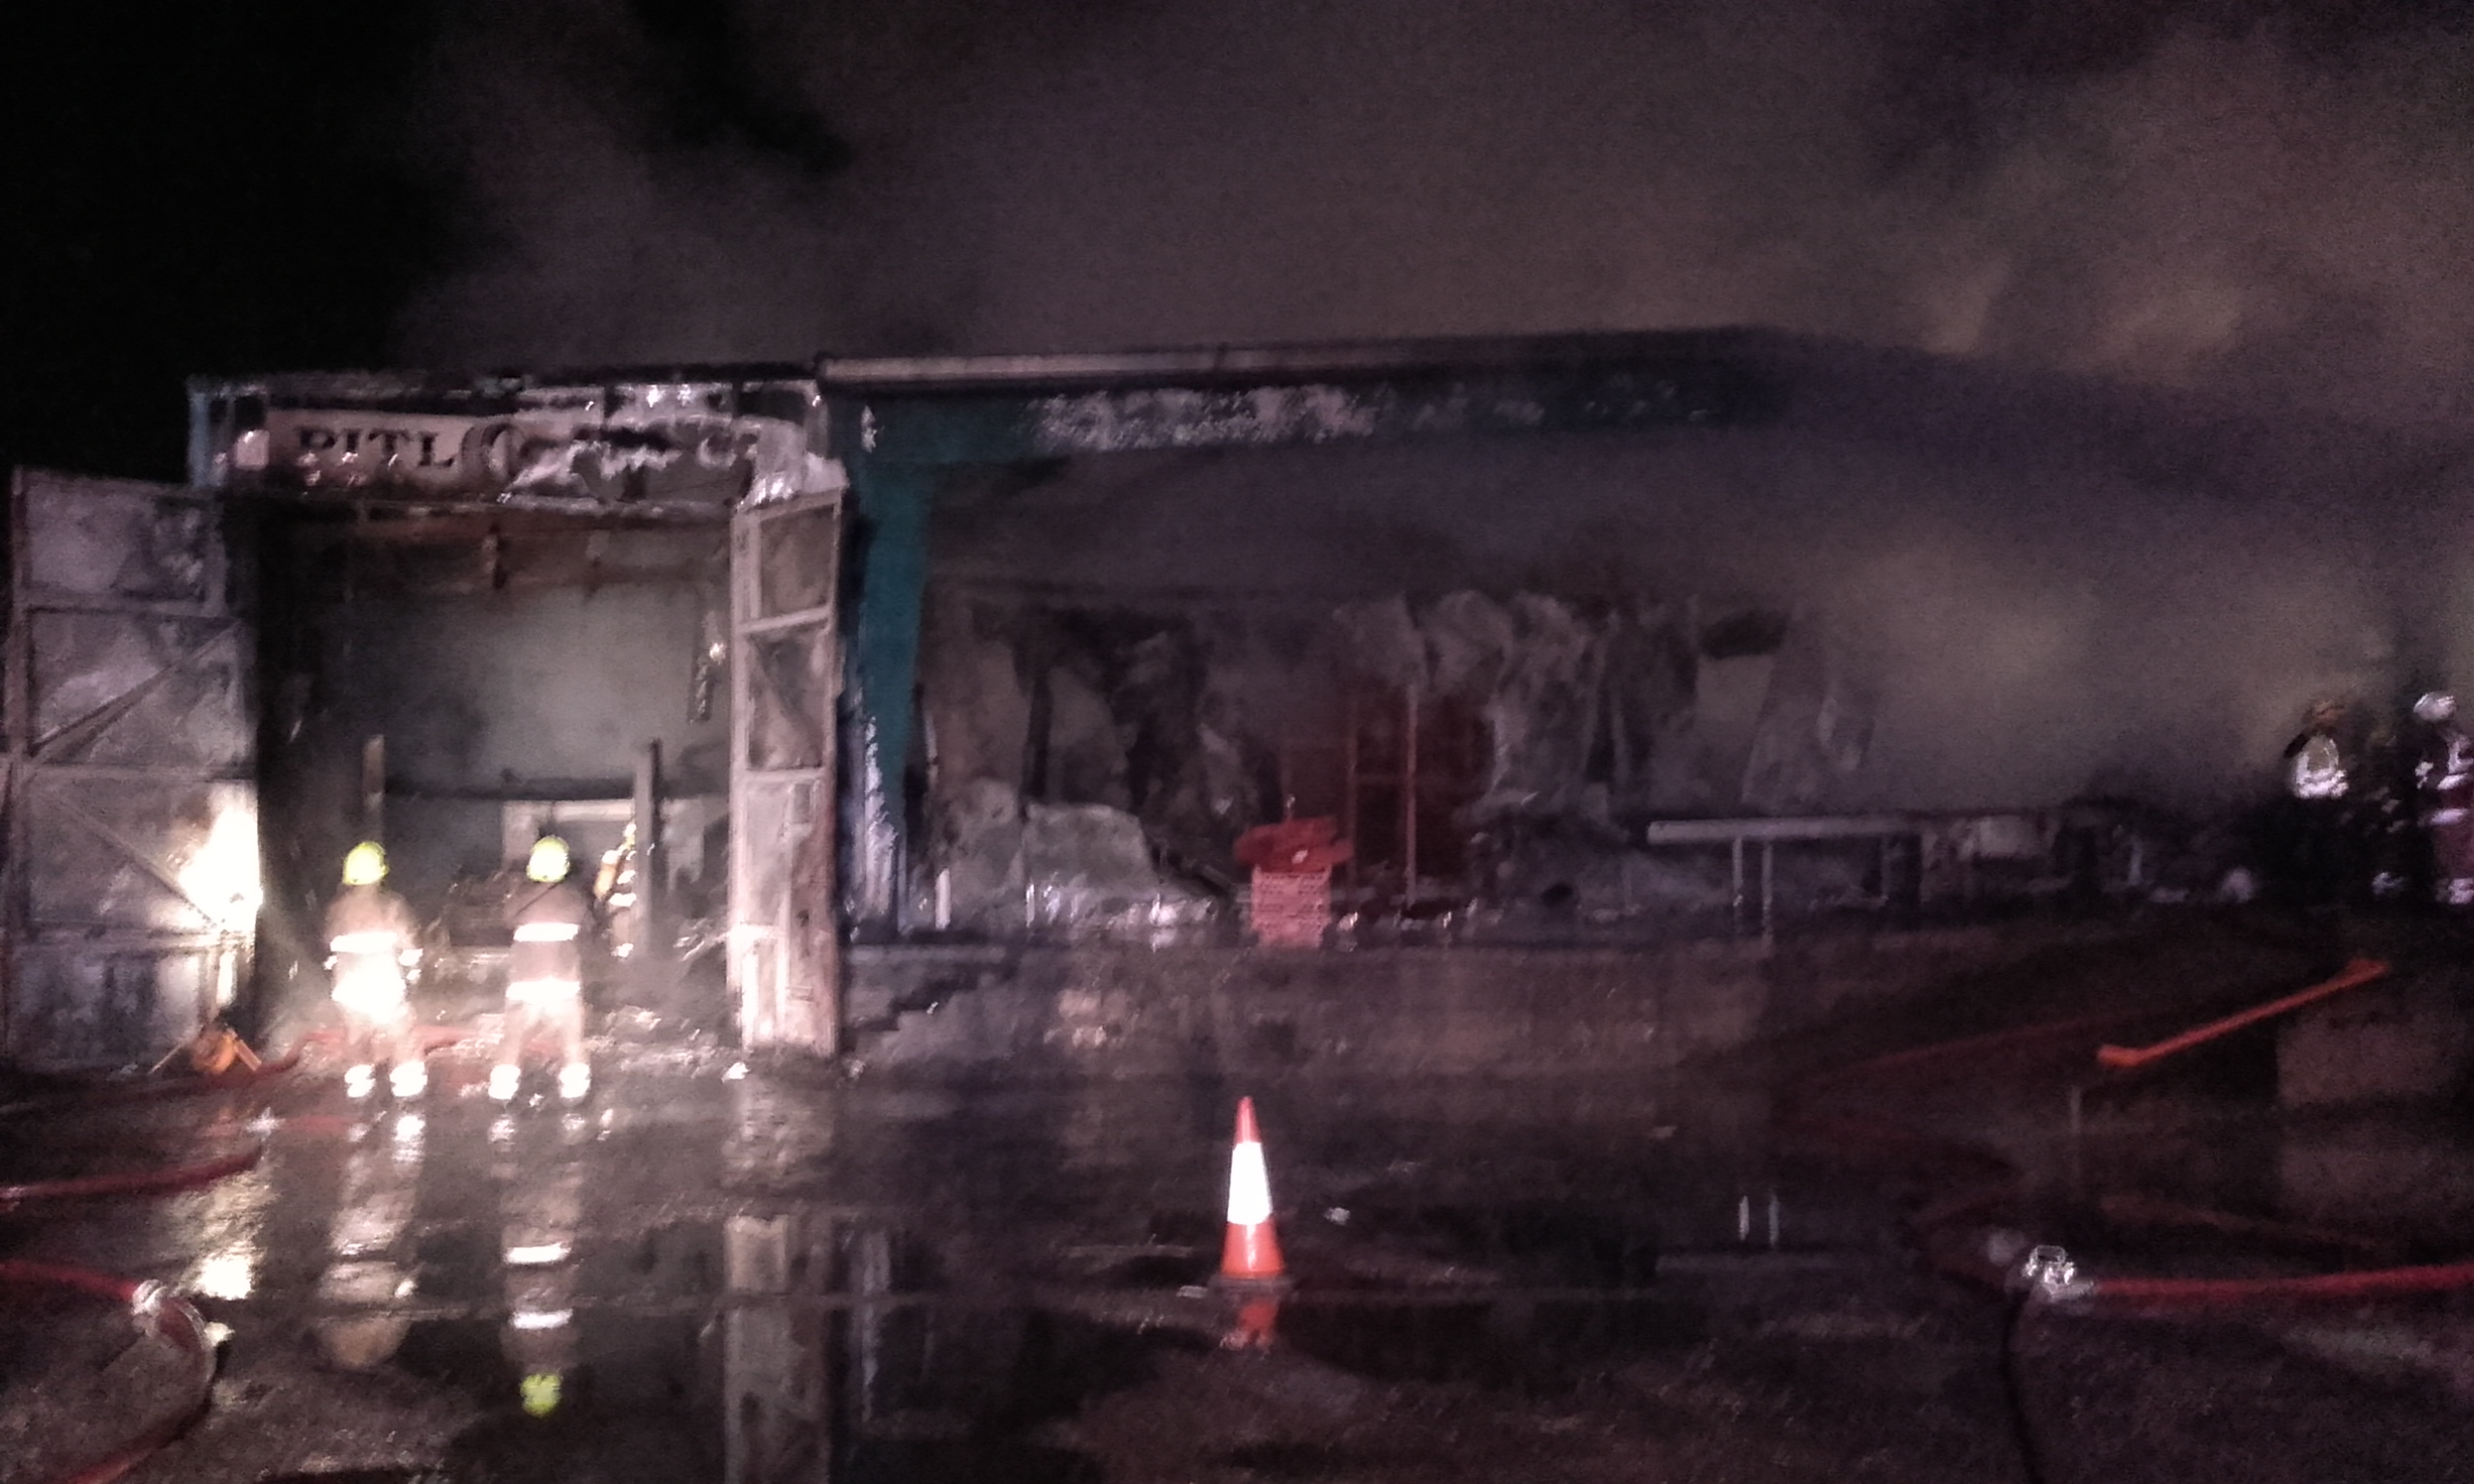 SFRS battled fire at industrial premises in Pitlochry last night